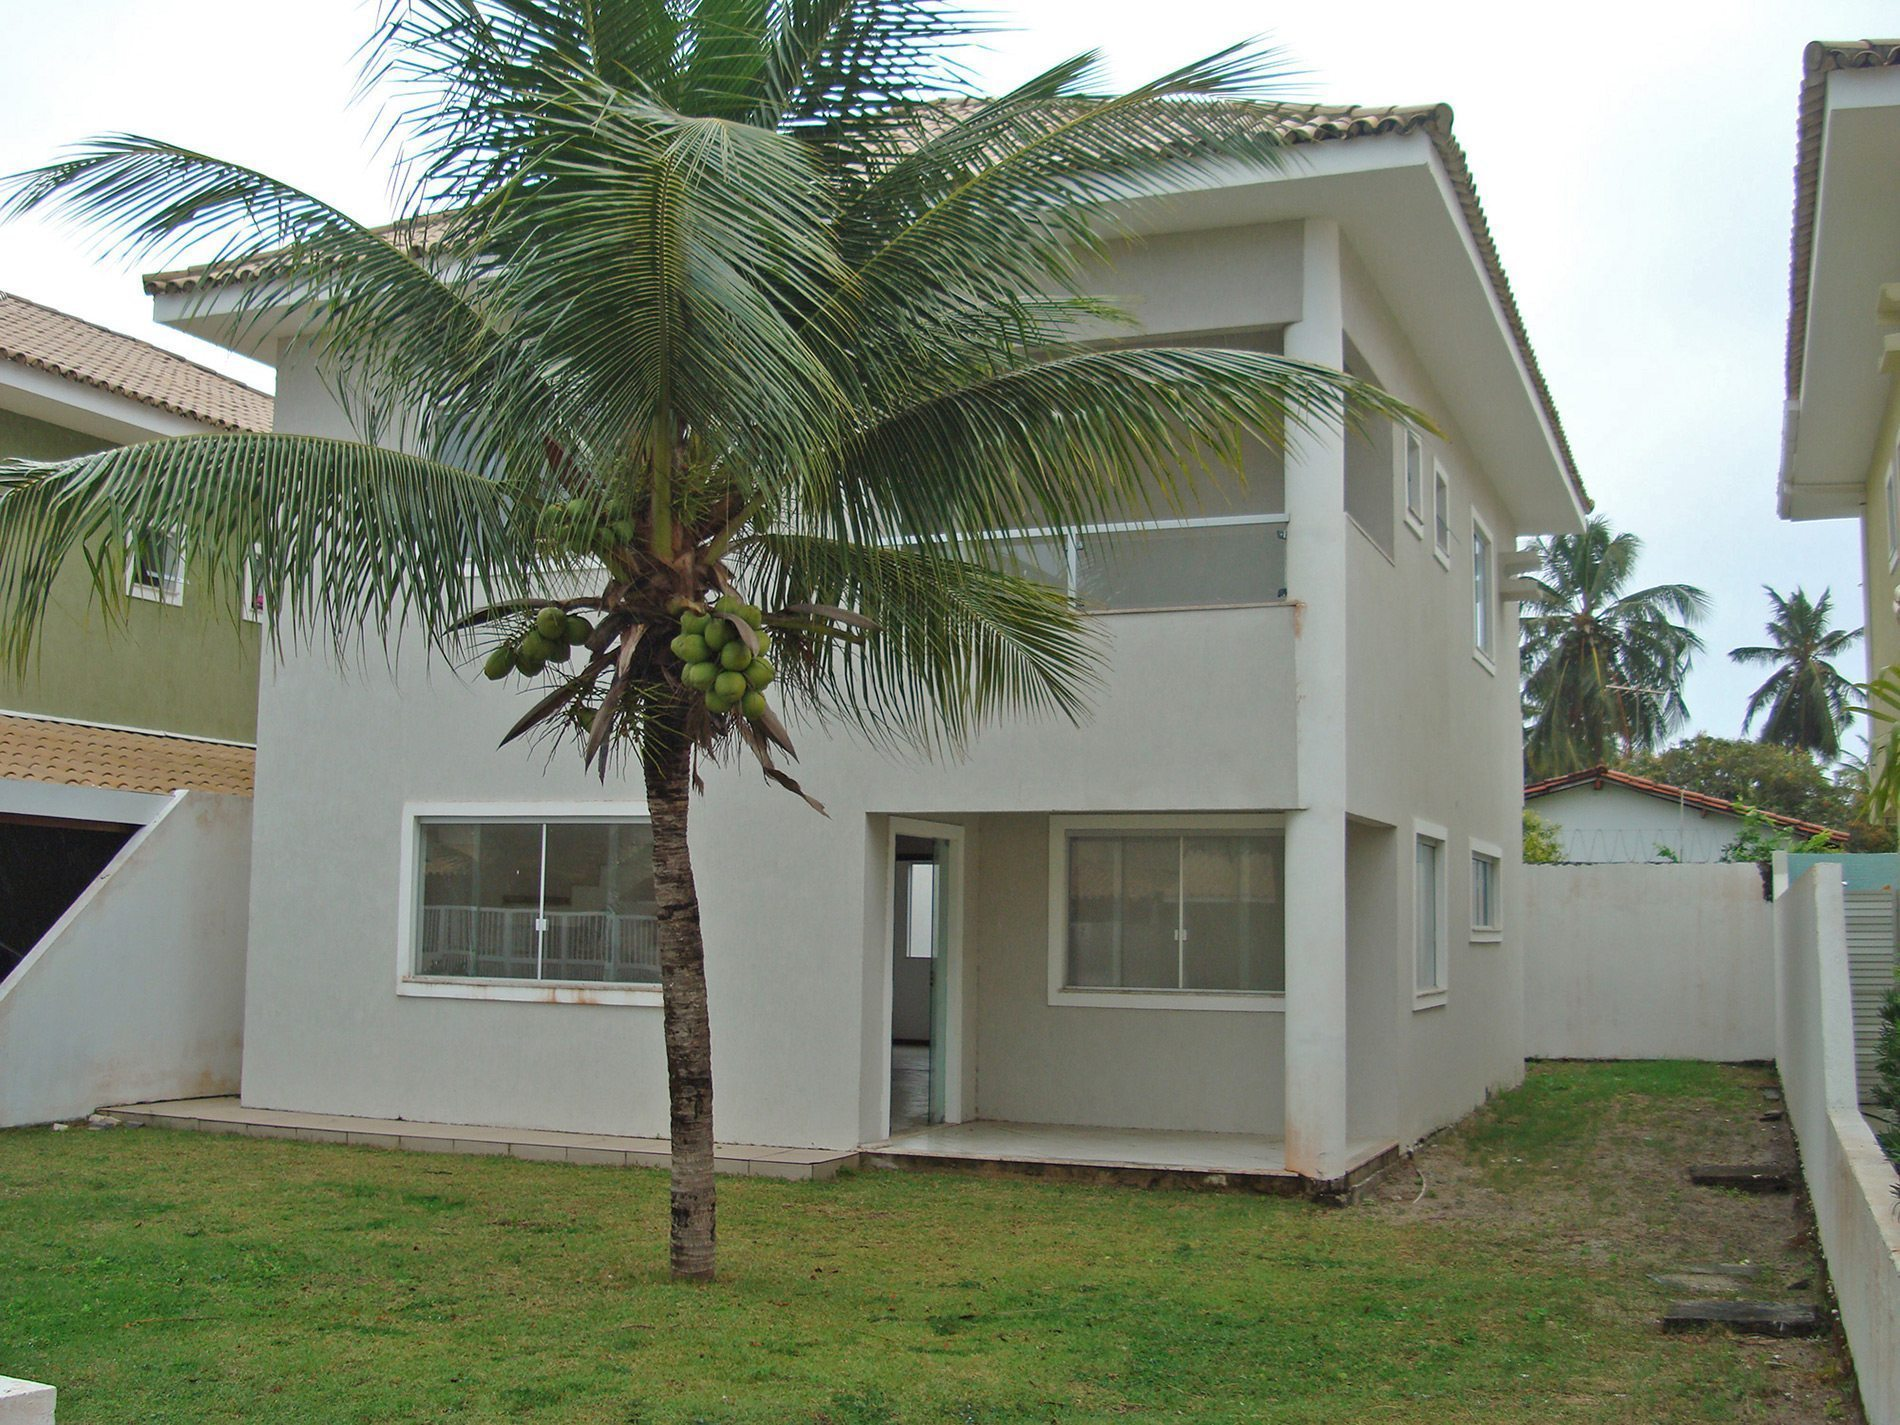 House for sale 500 meters from the beach in Buraquinho